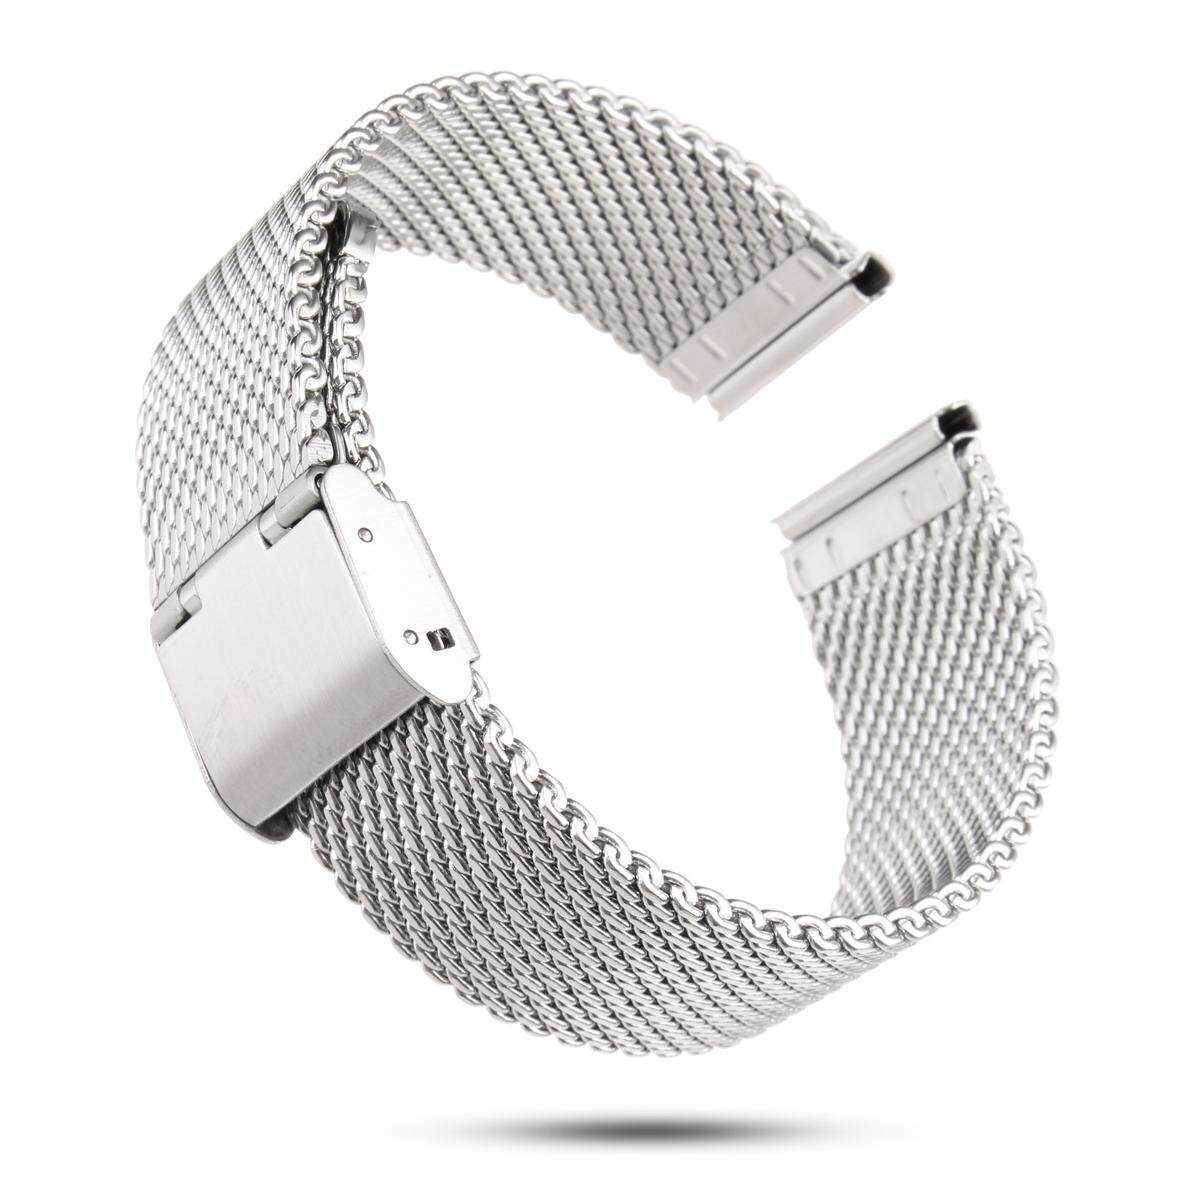 20mm Shark Wire Mesh Bracelet Watch Band Divers Strap For Seiko & Citizen [20mm] By Glimmer.